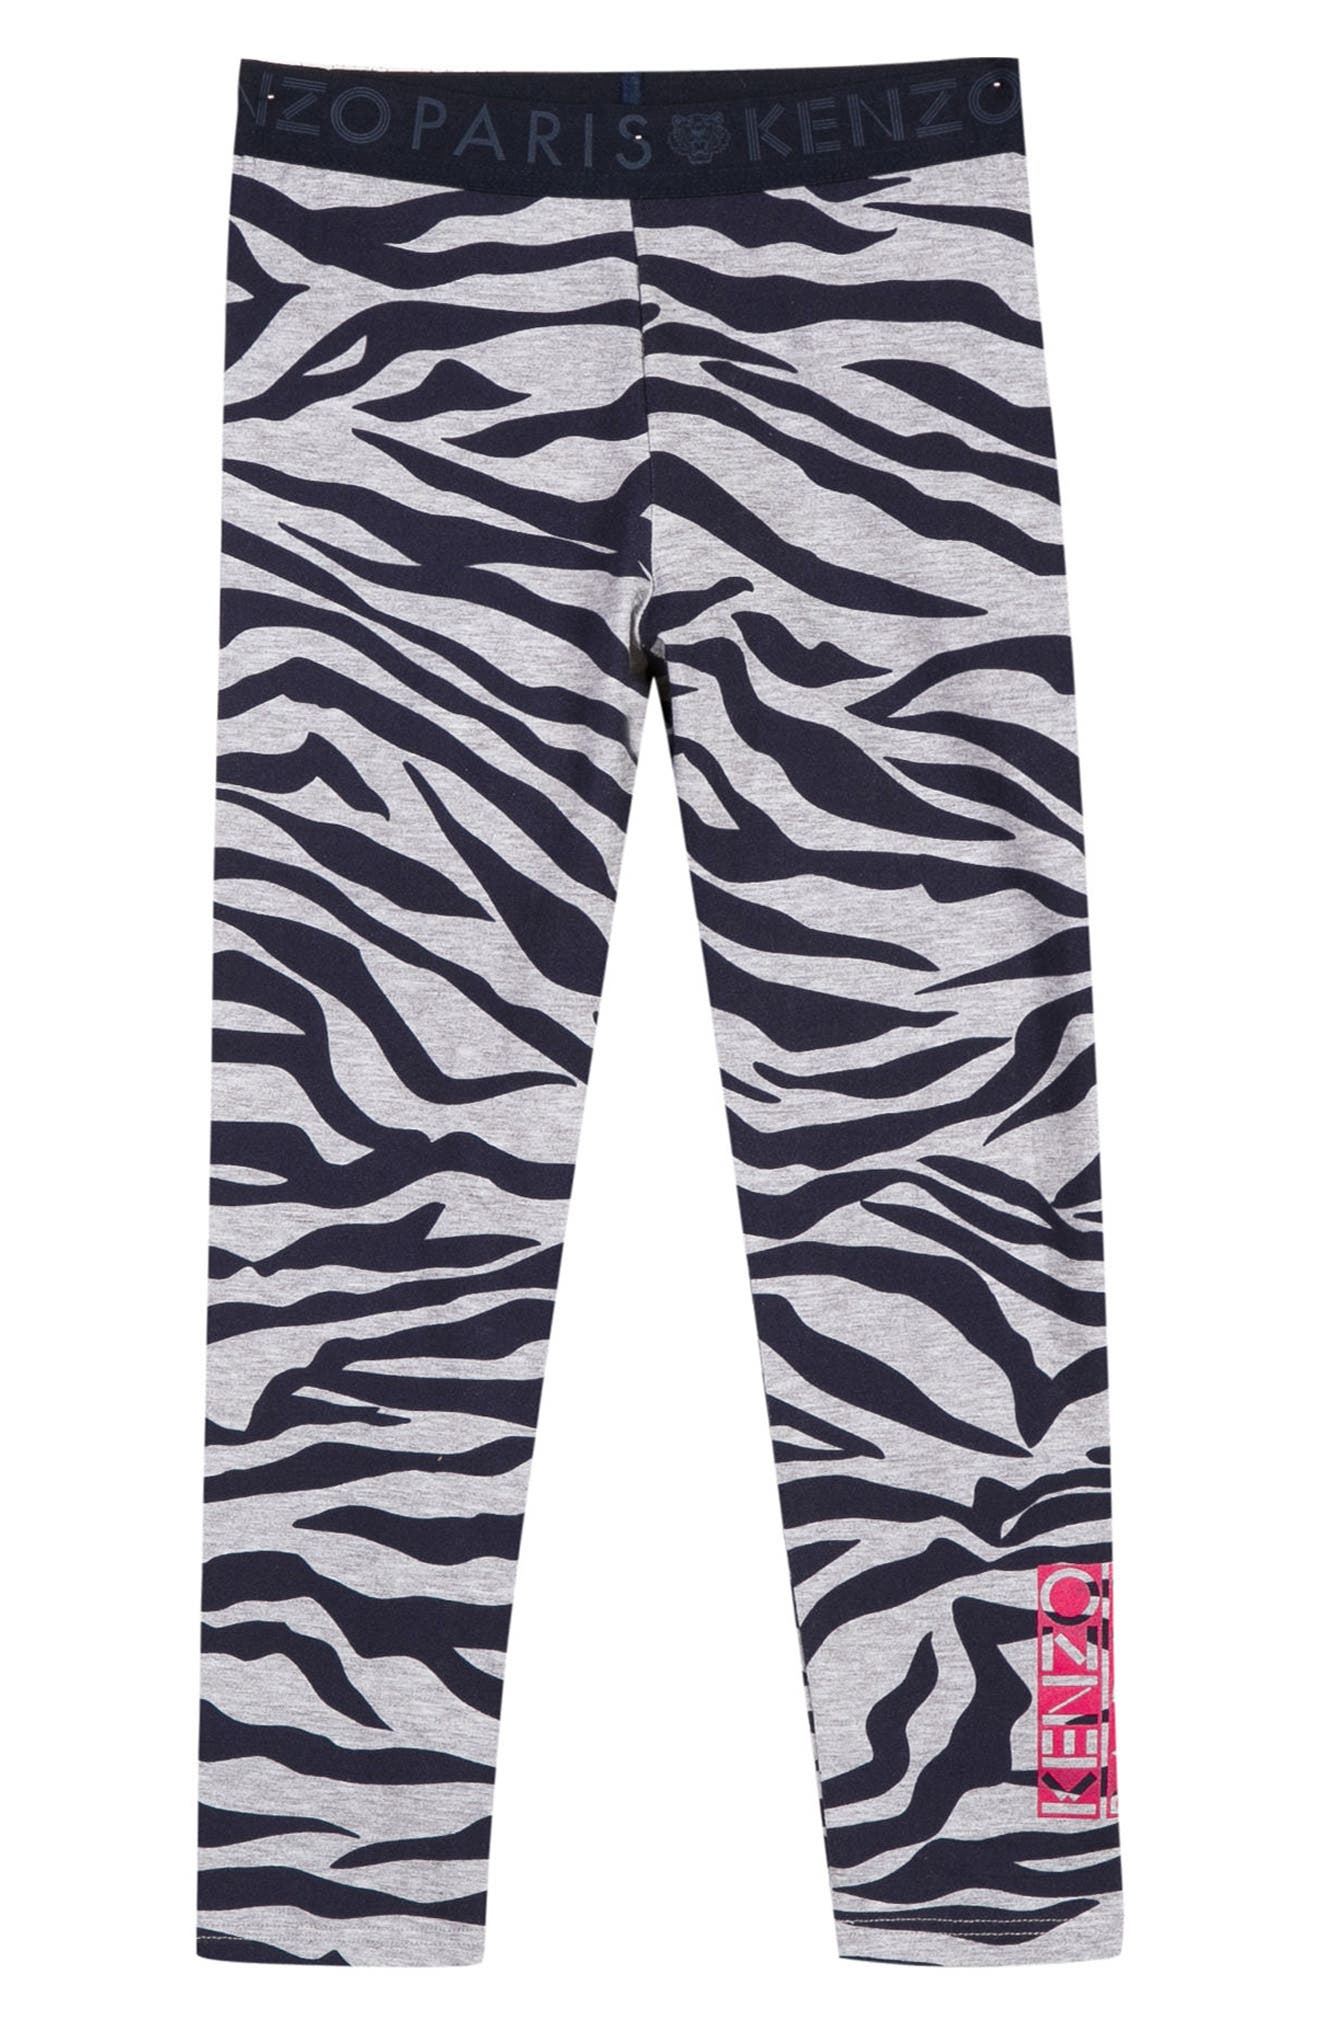 KENZO Stripe Leggings, Main, color, 076